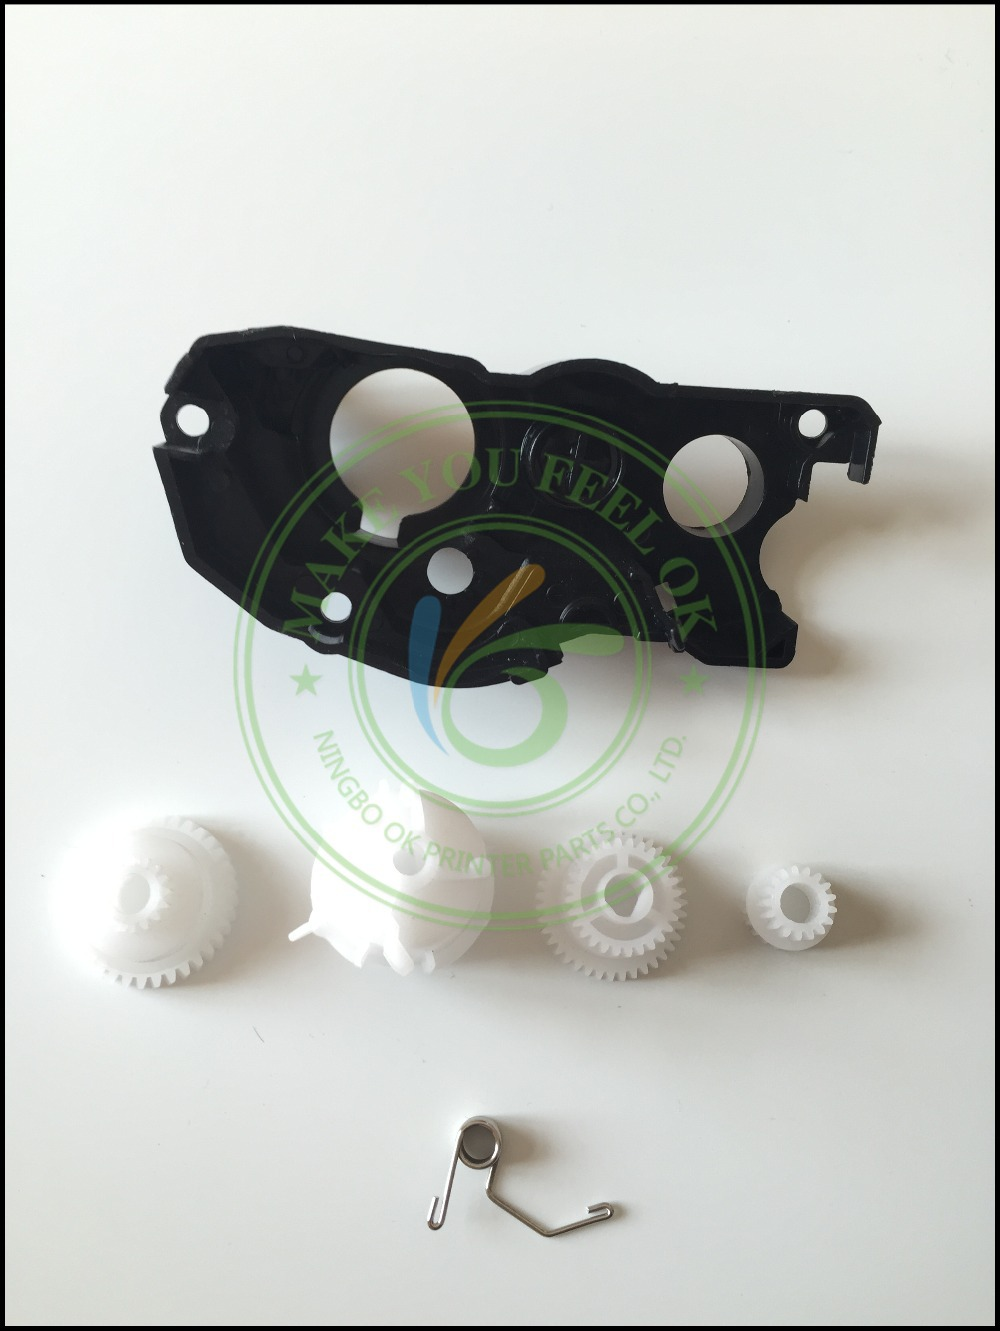 COMPATIBLE NEW flag reset lever gear end cap side cover plate with spring for Brother DCP7055 TN2015 HL2130 HL2132